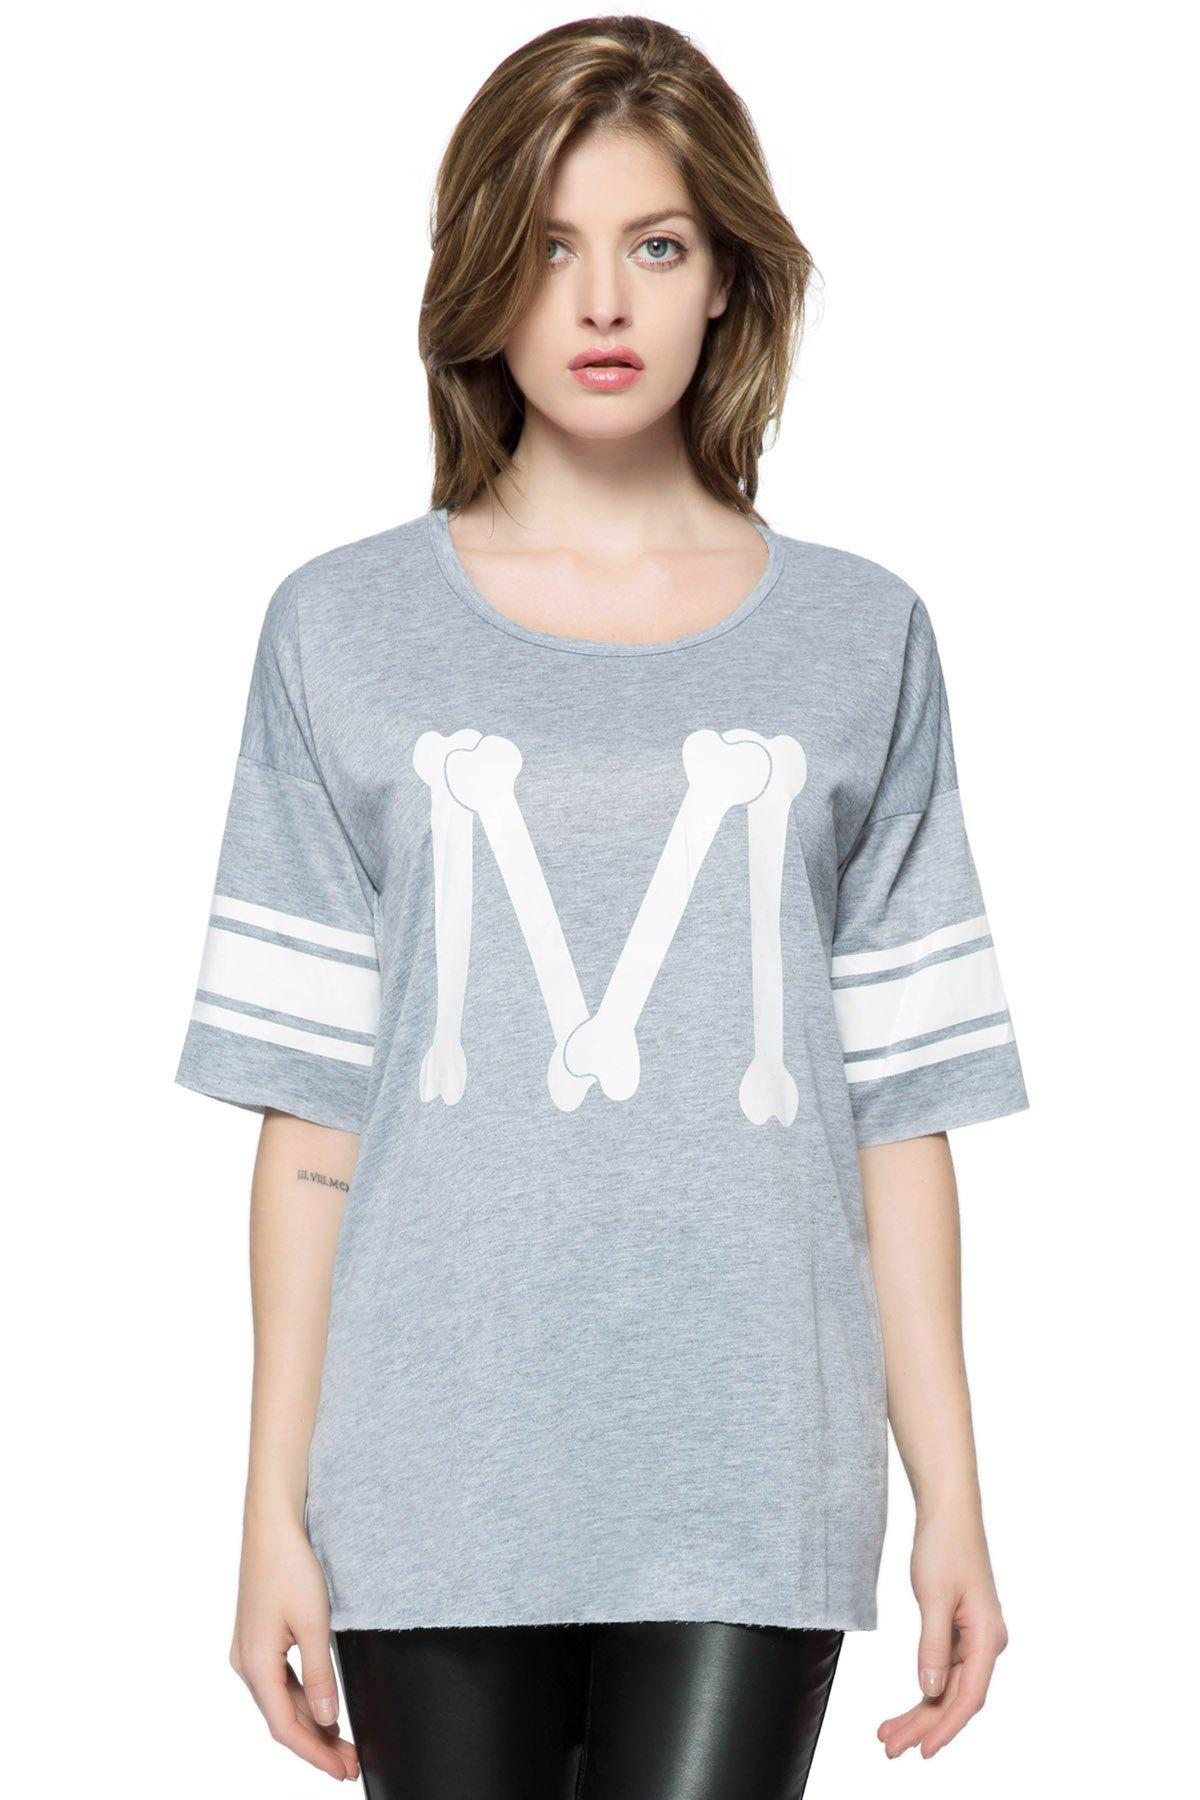 Casual Scoop Neck Loose-Fitting 3/4 Length Sleeve Printed T-shirt For Women - DEEP GRAY ONE SIZE